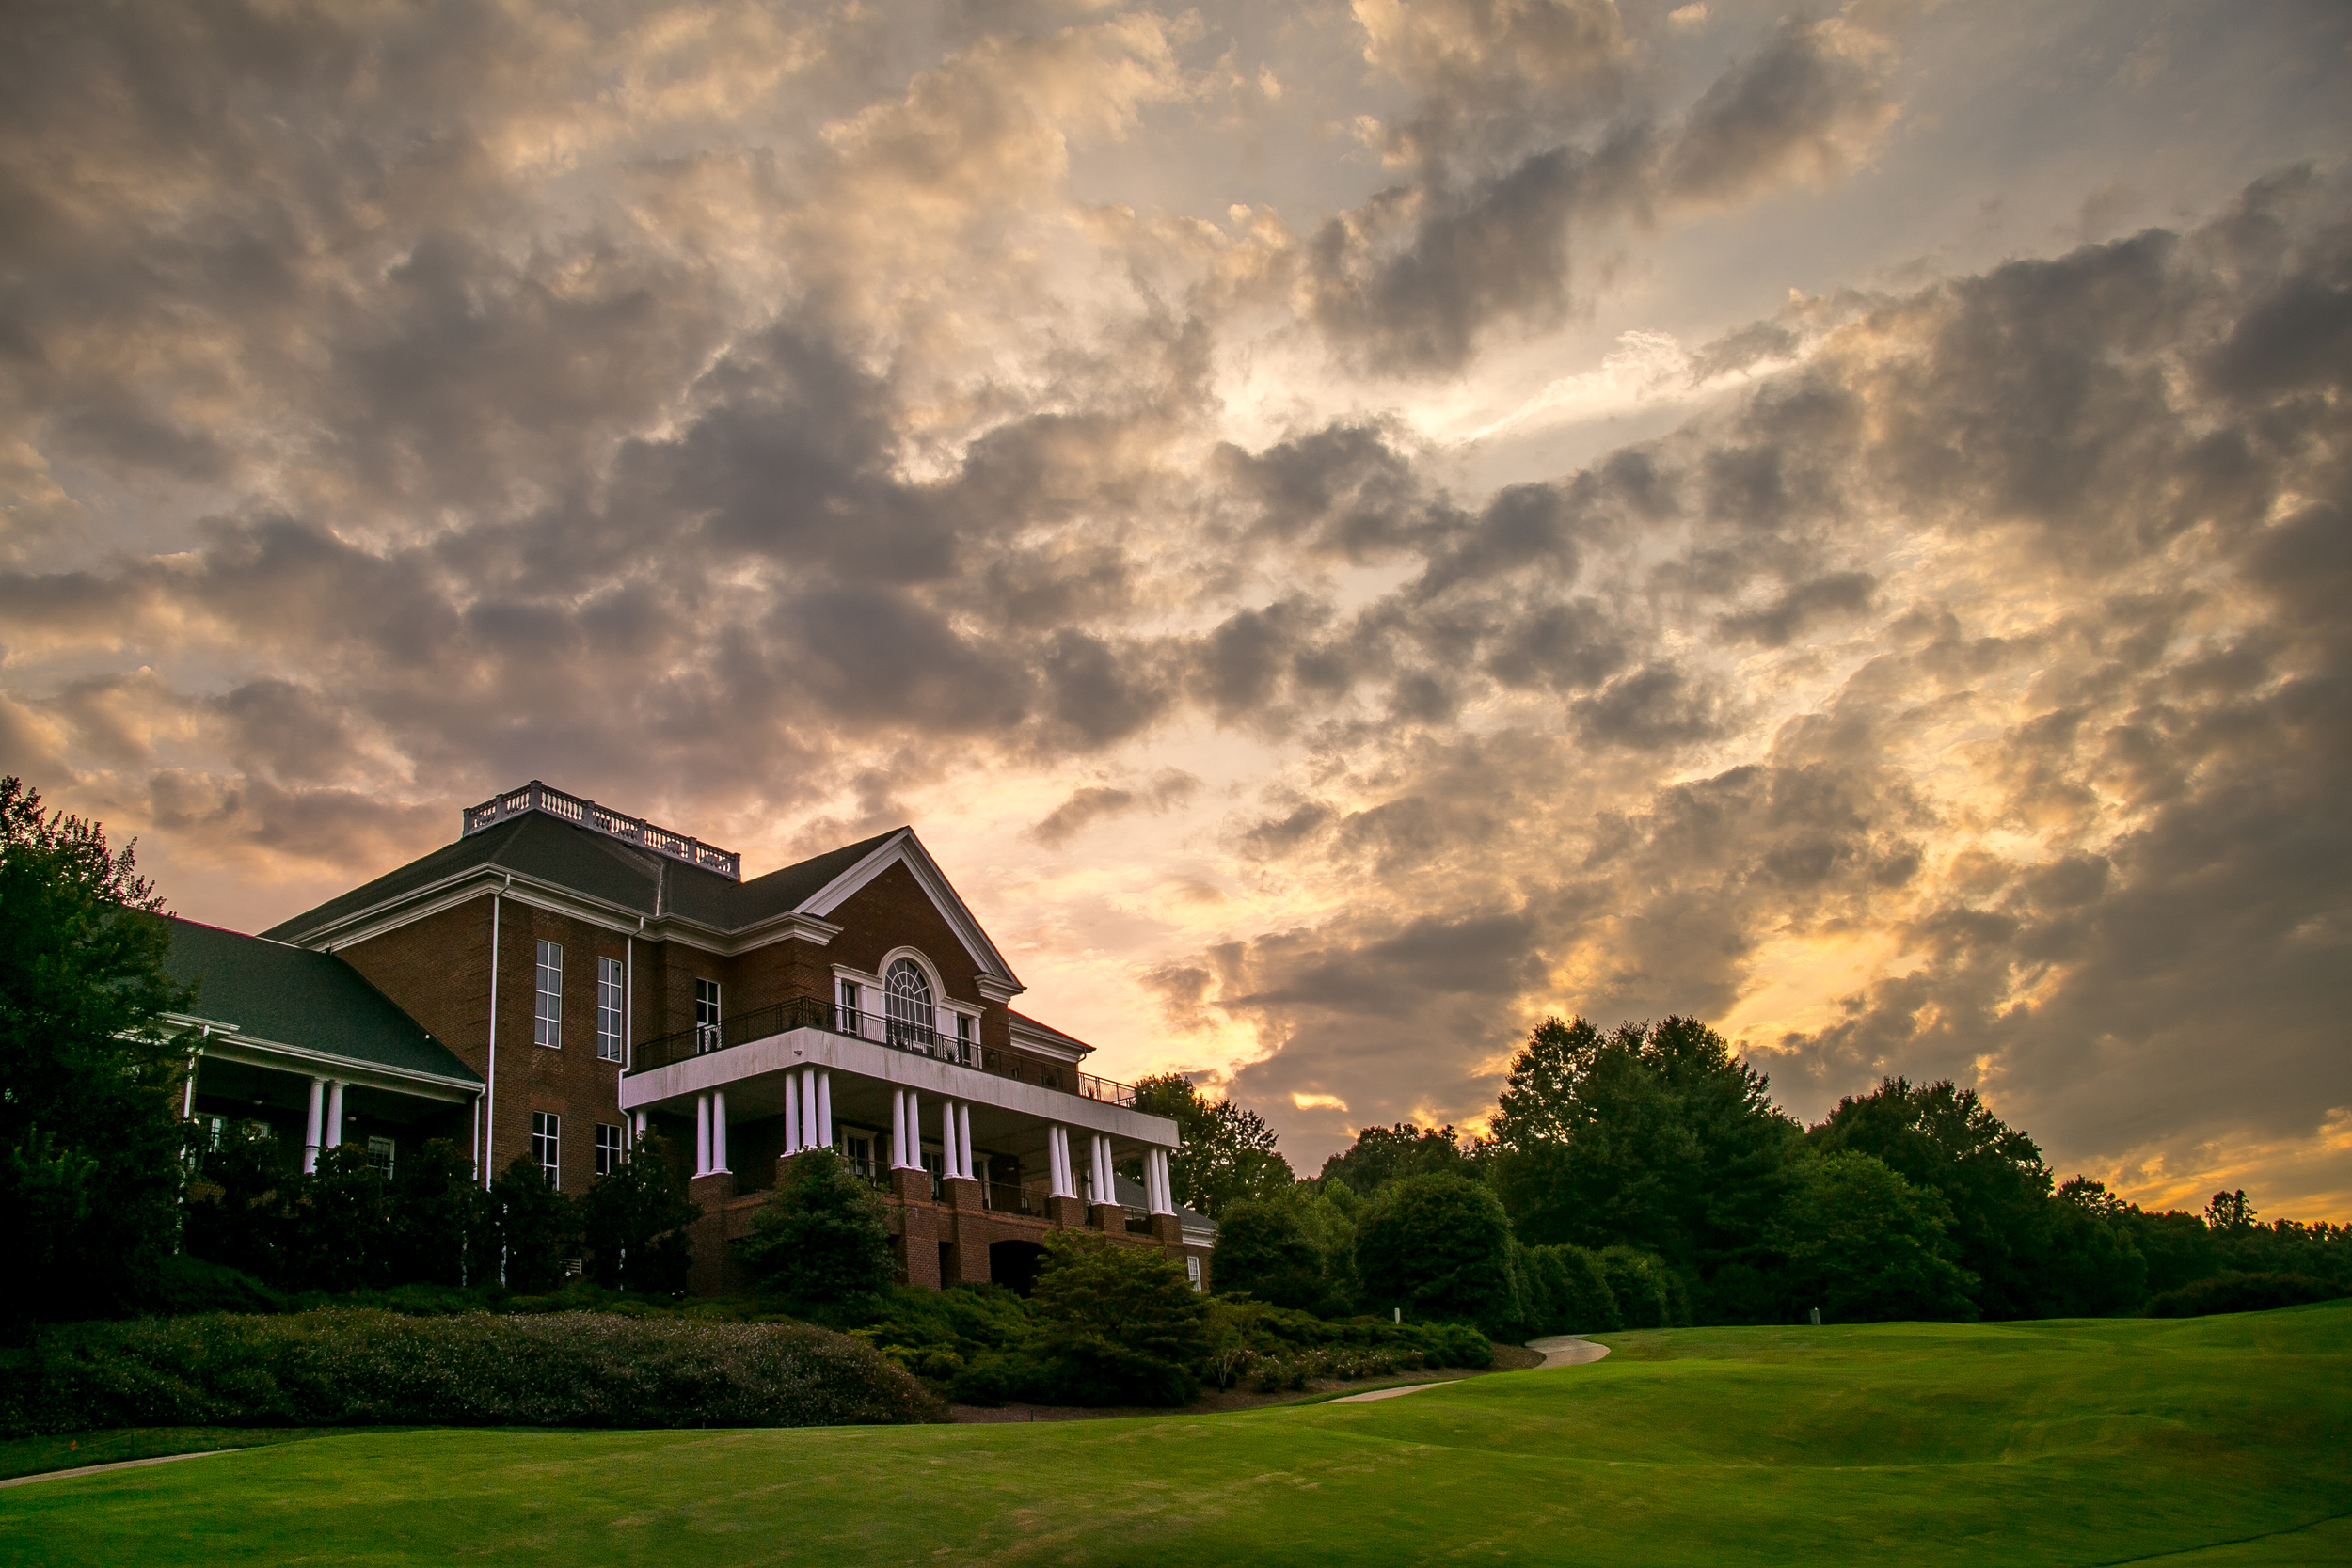 The Clubhouse After A Storm